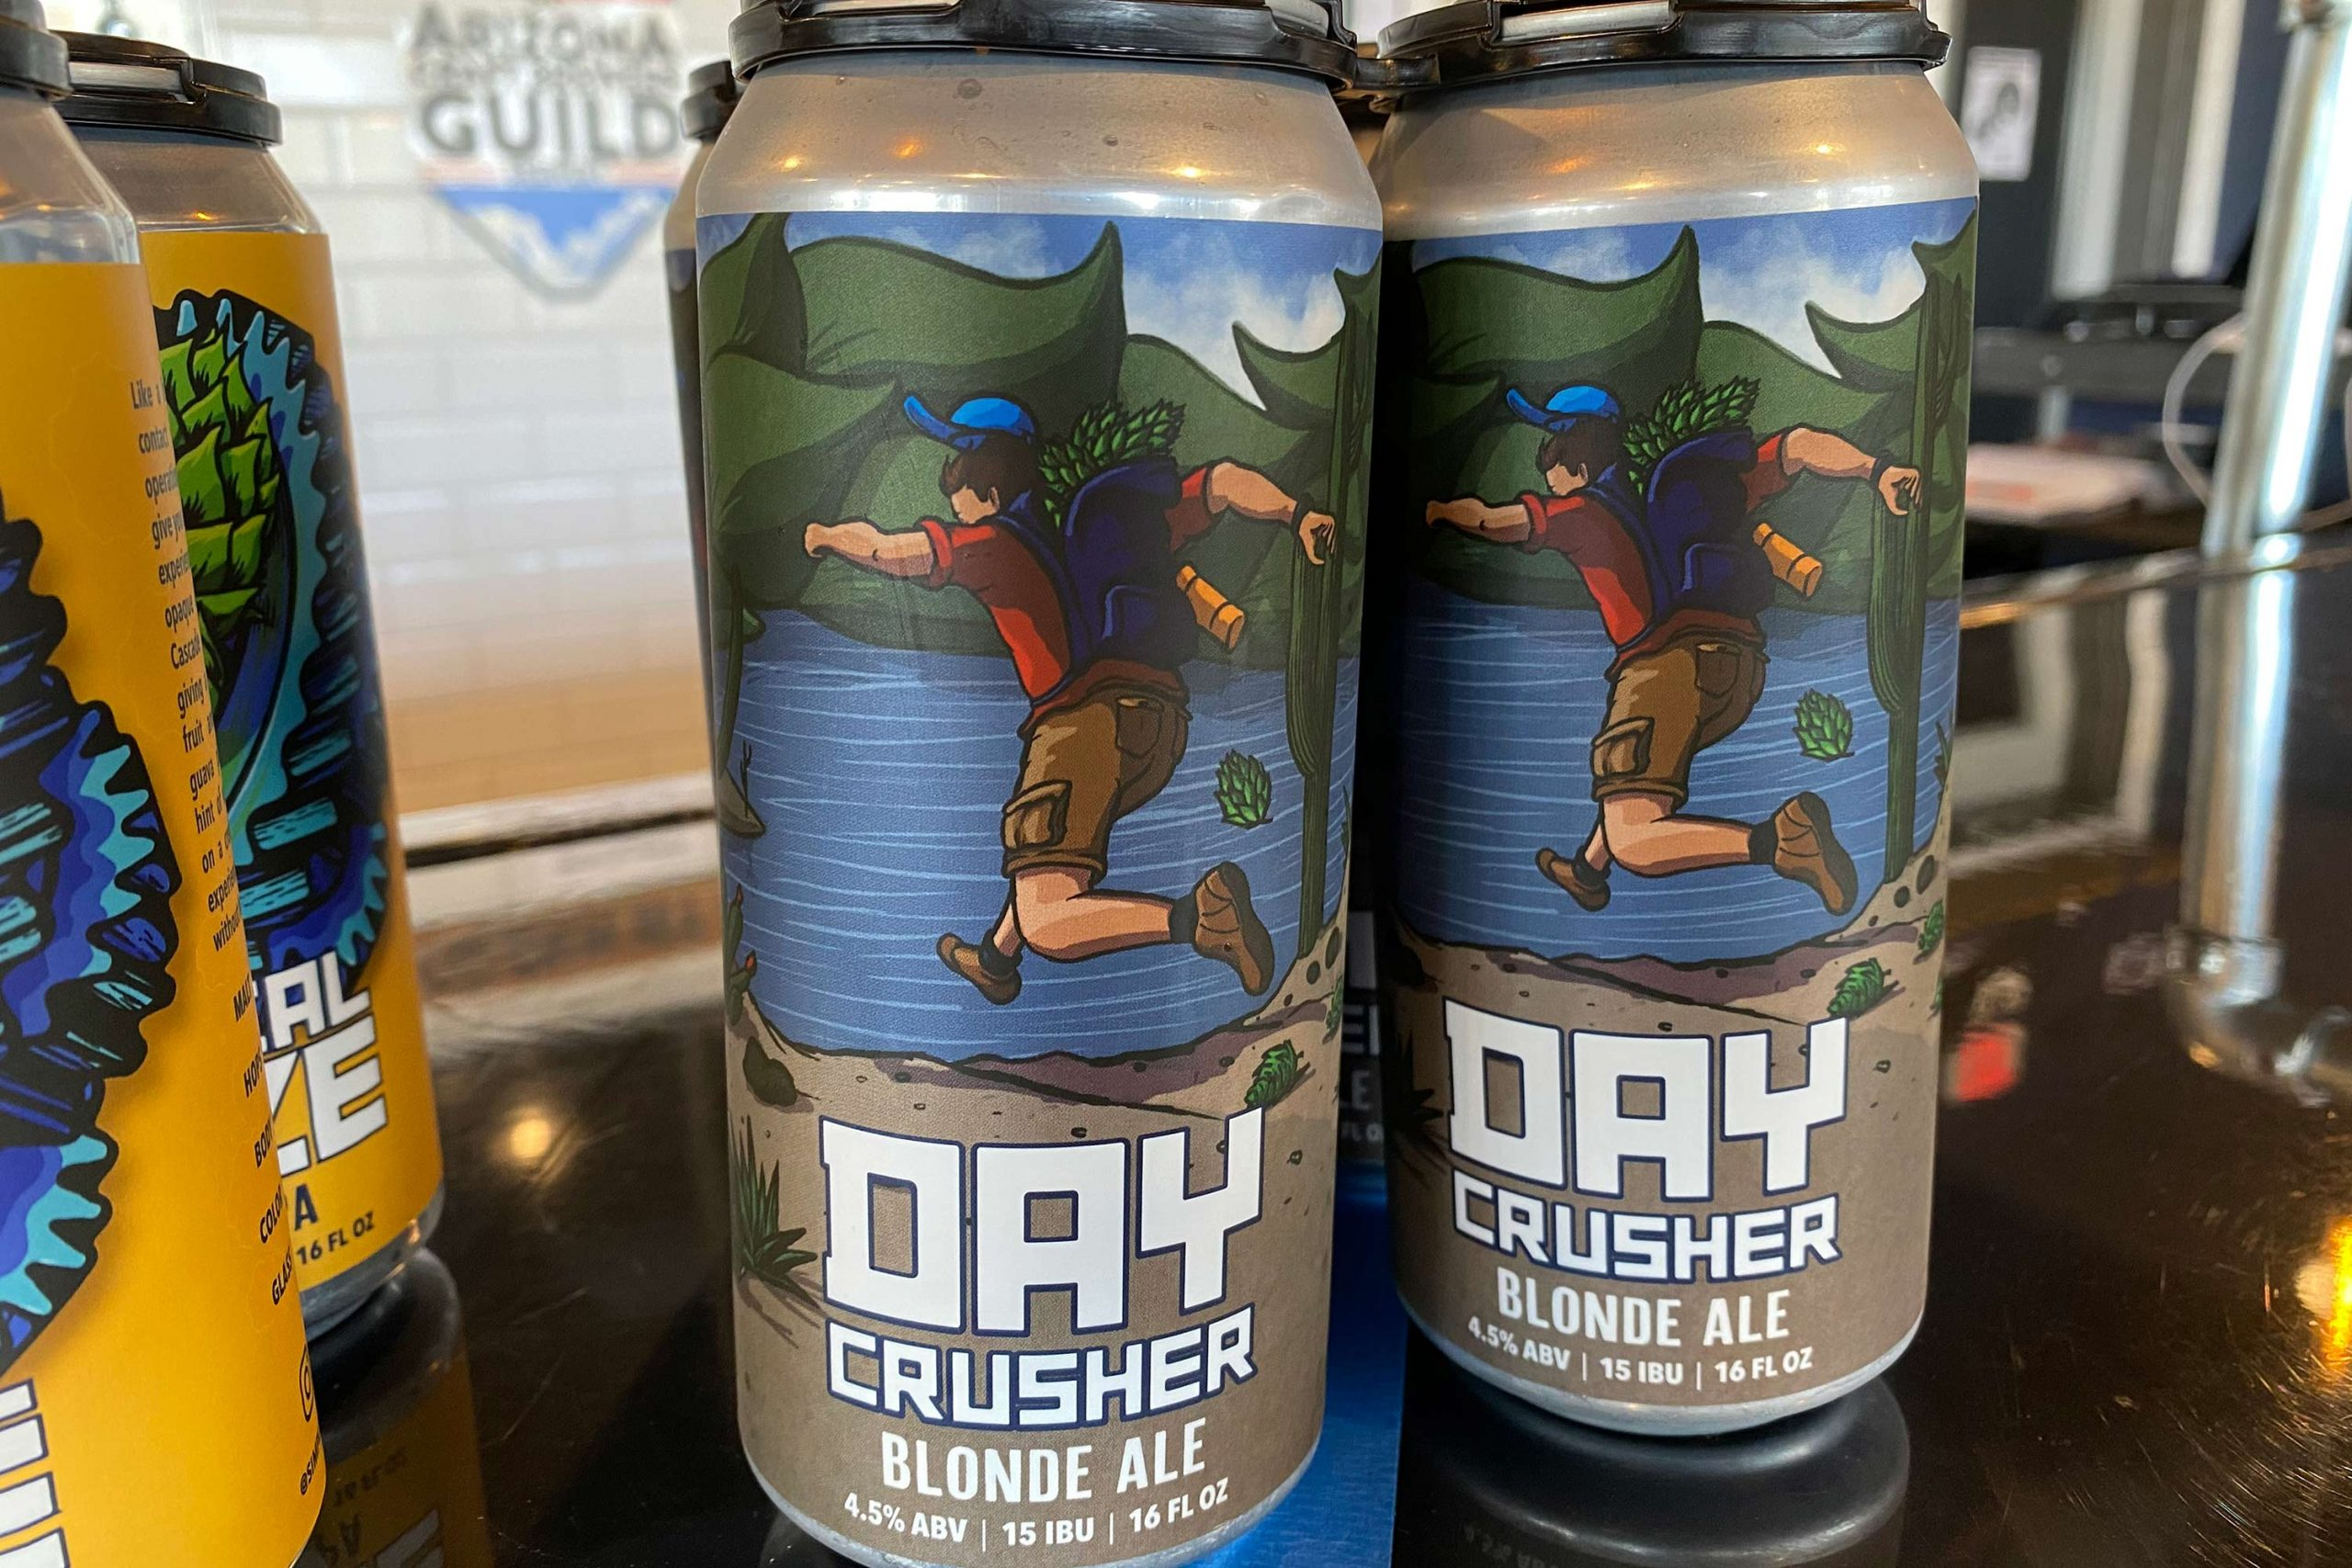 Day Crusher Blonde Ale from Simple Machine Brewing